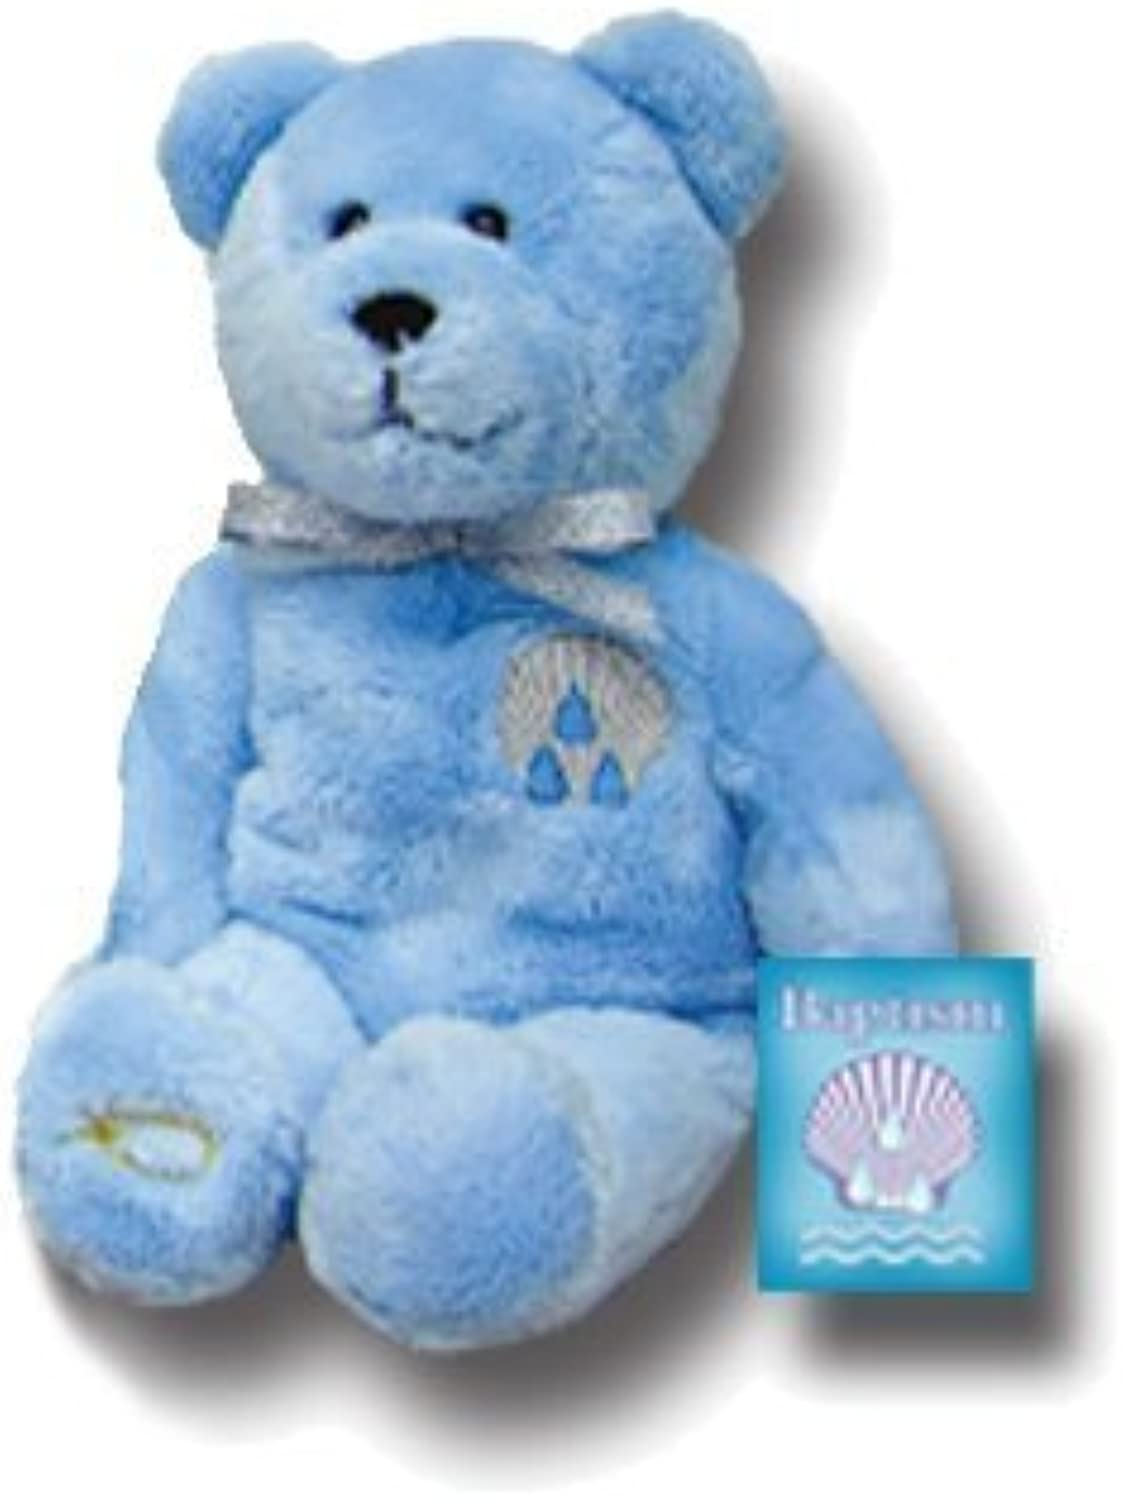 Holy Bears, bluee Christening - Baptism Bear, Stuffed Animal. 8 Inch Plush bluee Bear with Embroidered Baptismal Symbol. Inside Hangtag  Peter Replied, Repent and Be Baptized, Every One of You, in the Name of Jesus Christ for the Forgiveness of Your Sins.